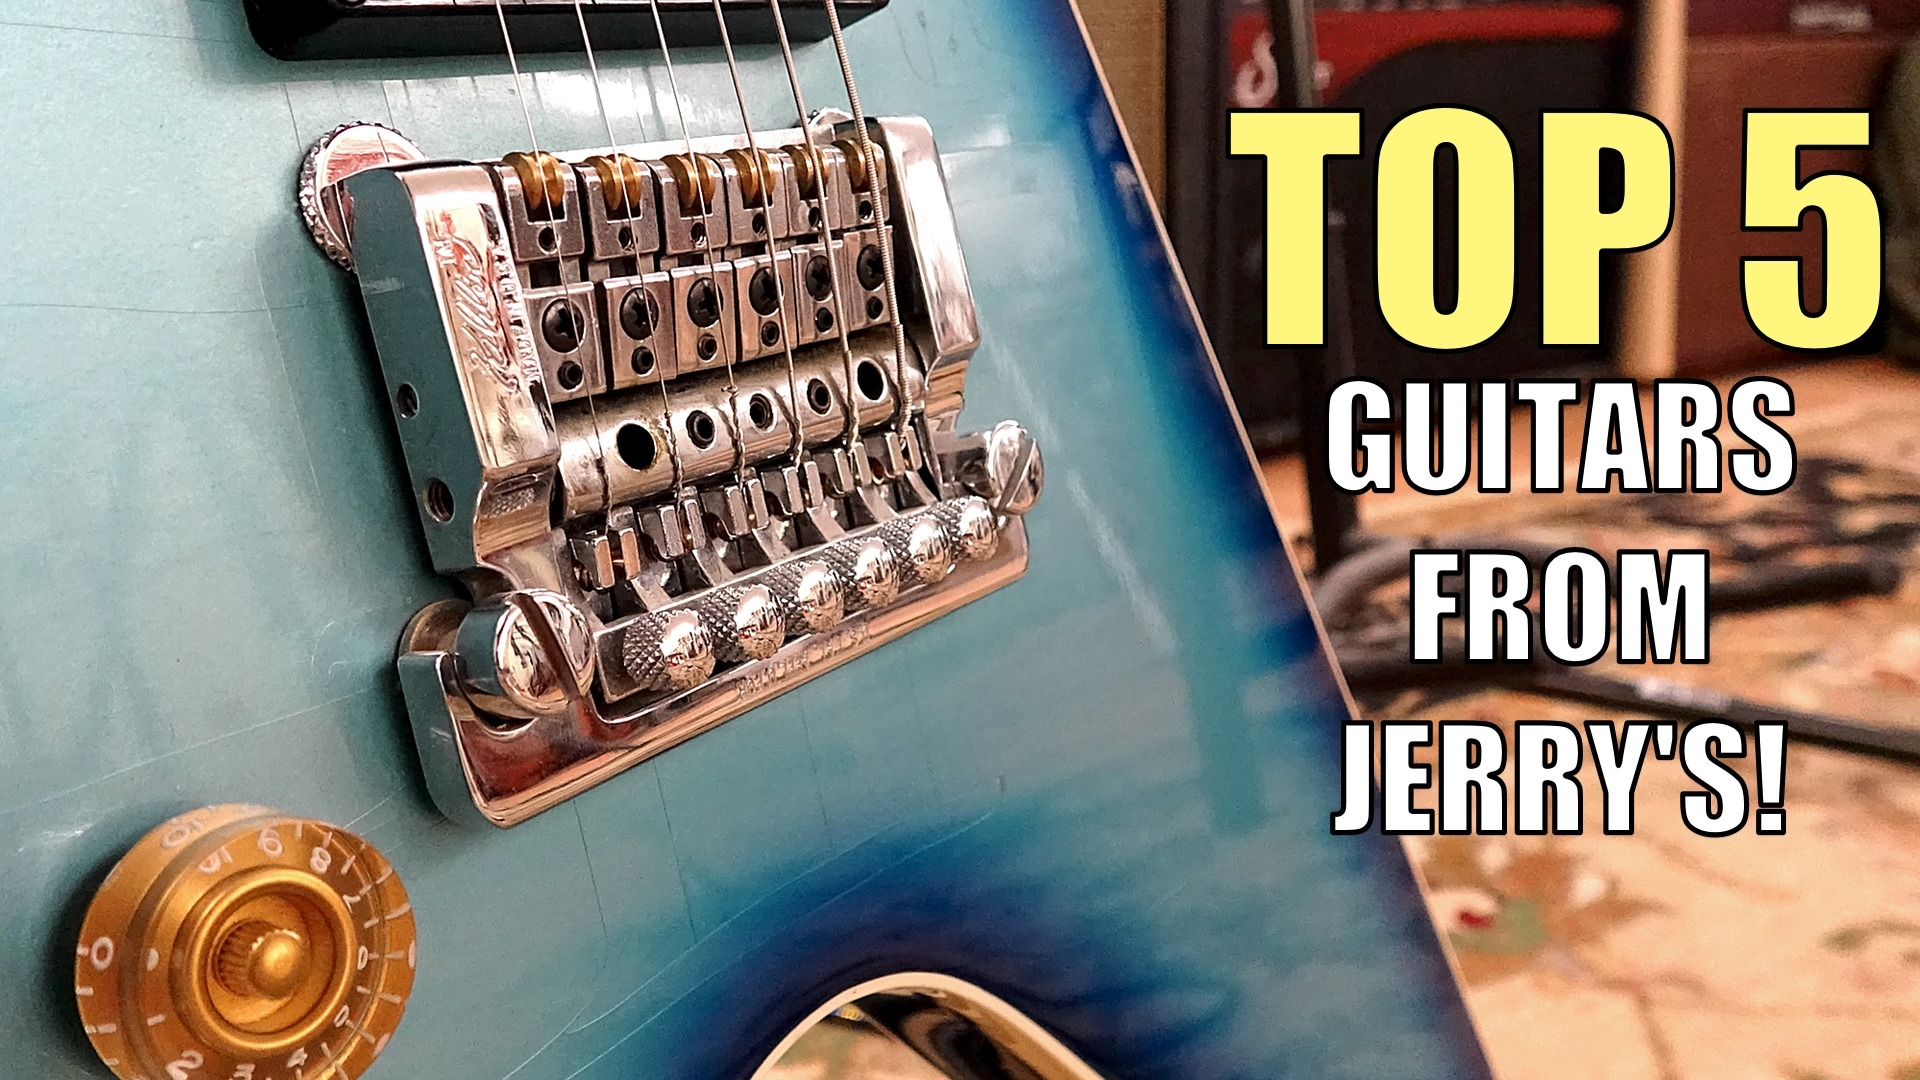 Top 5 Electric Guitars